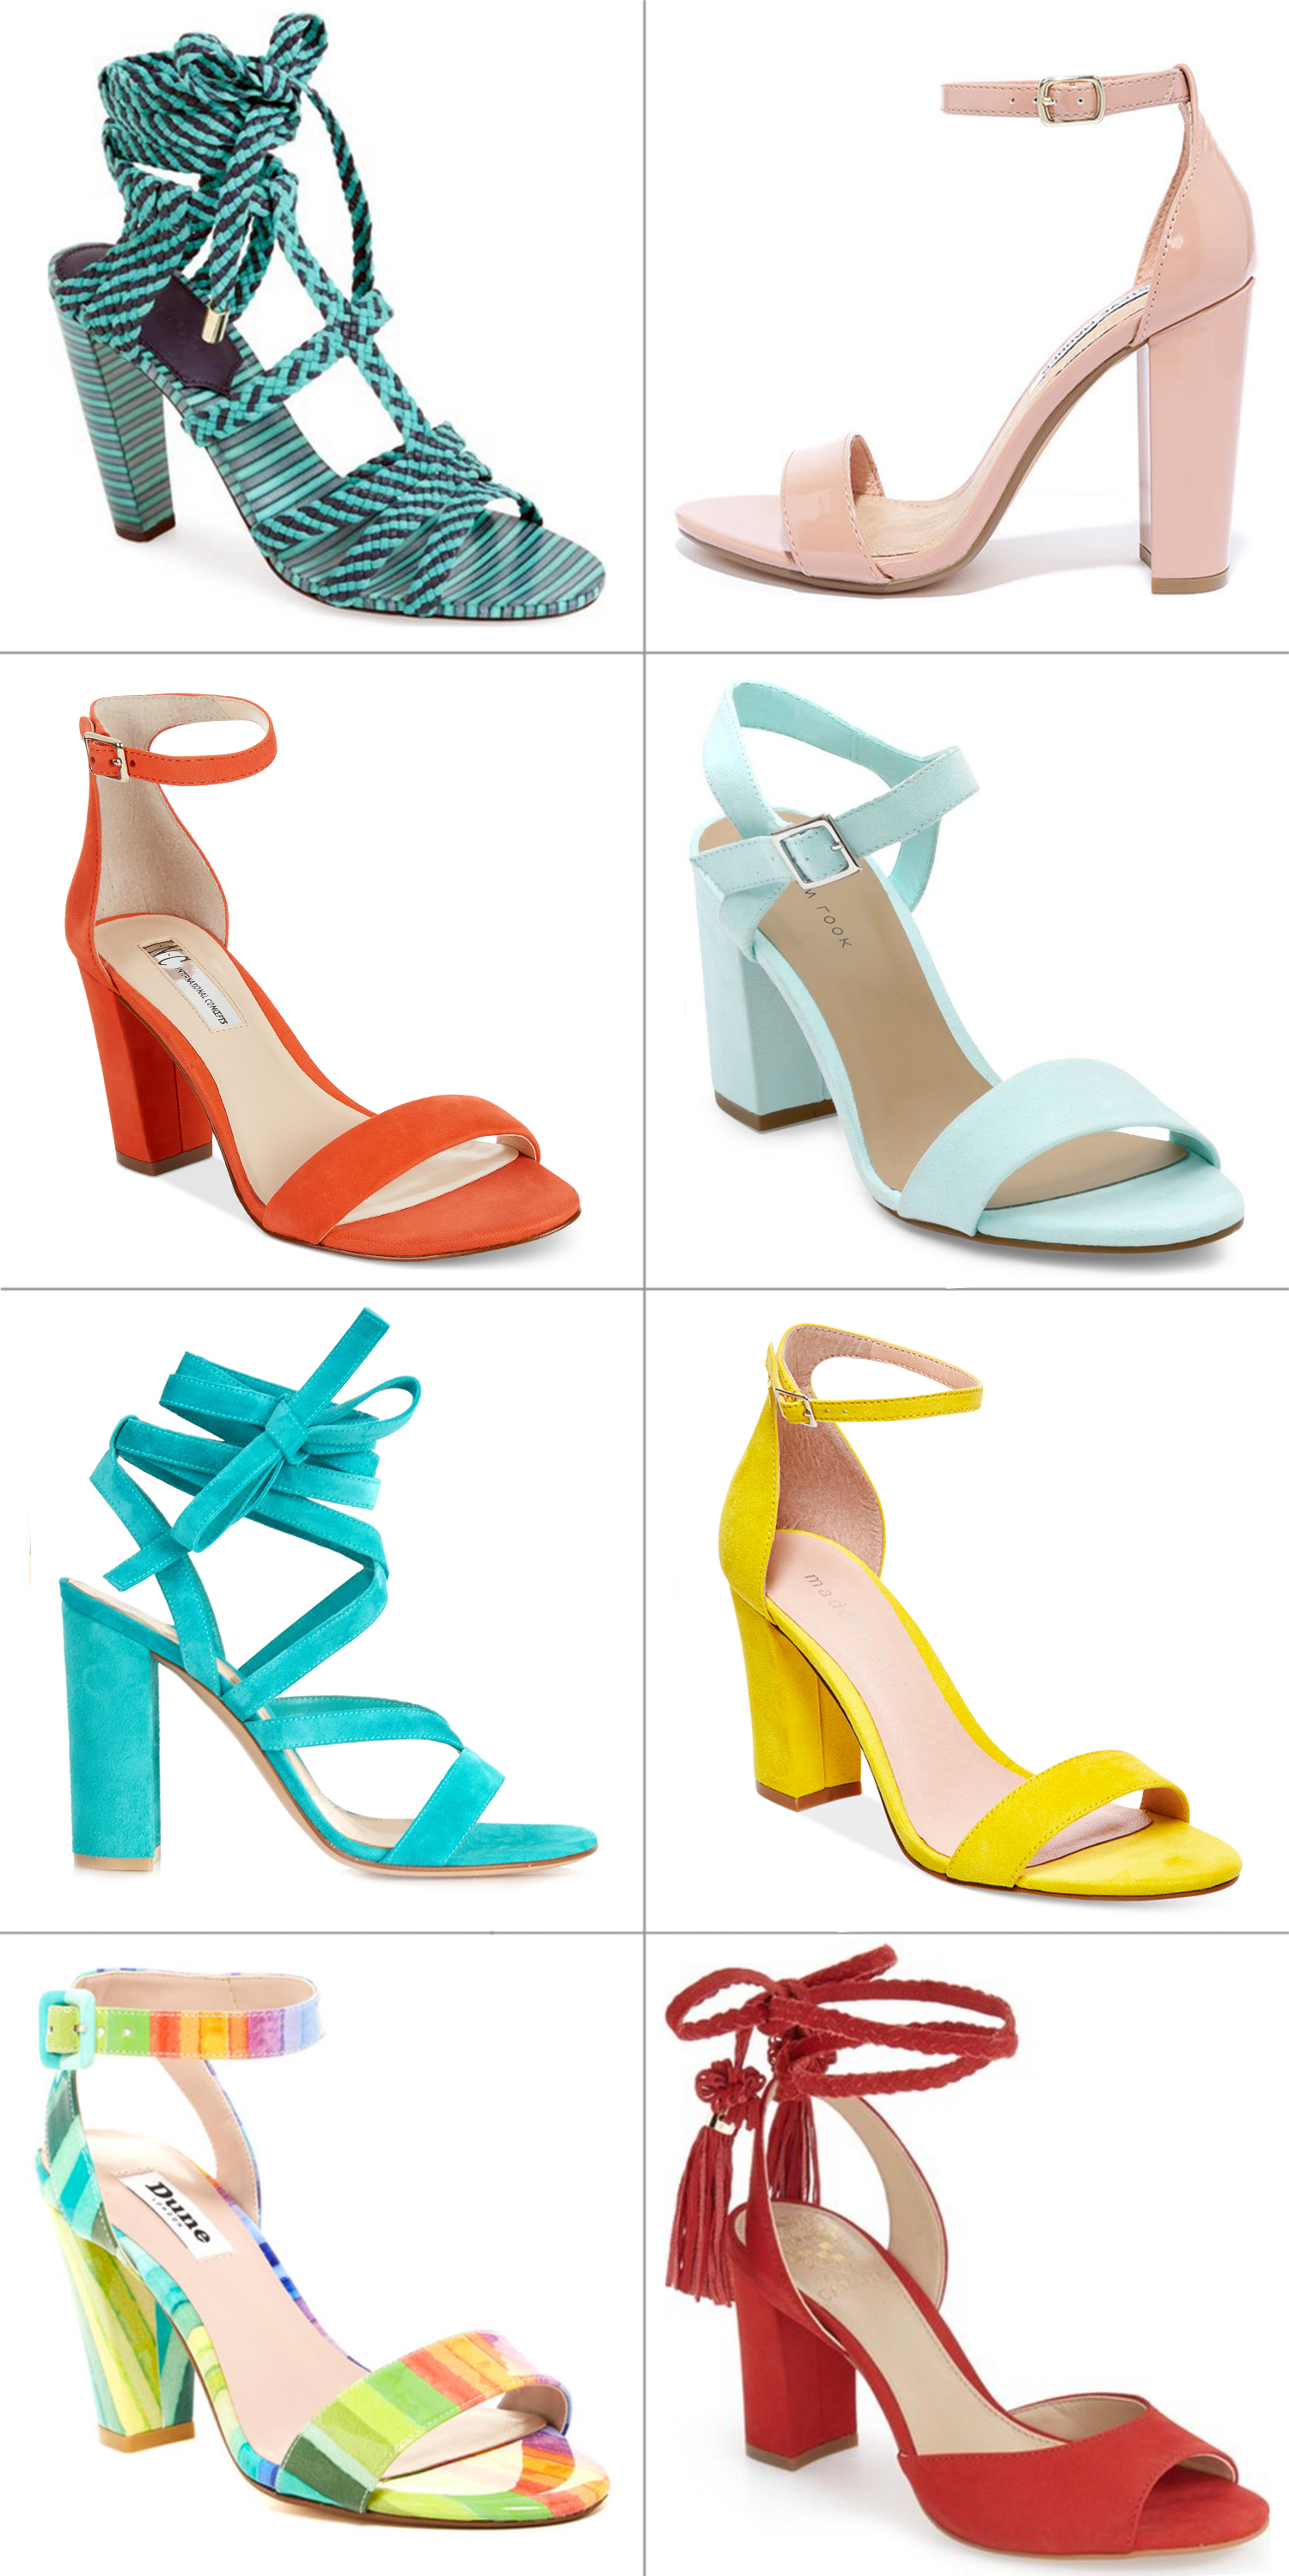 ba257970eb3 Sparkles and Shoes Currently Trending Colorful Block Heel Sandals ...